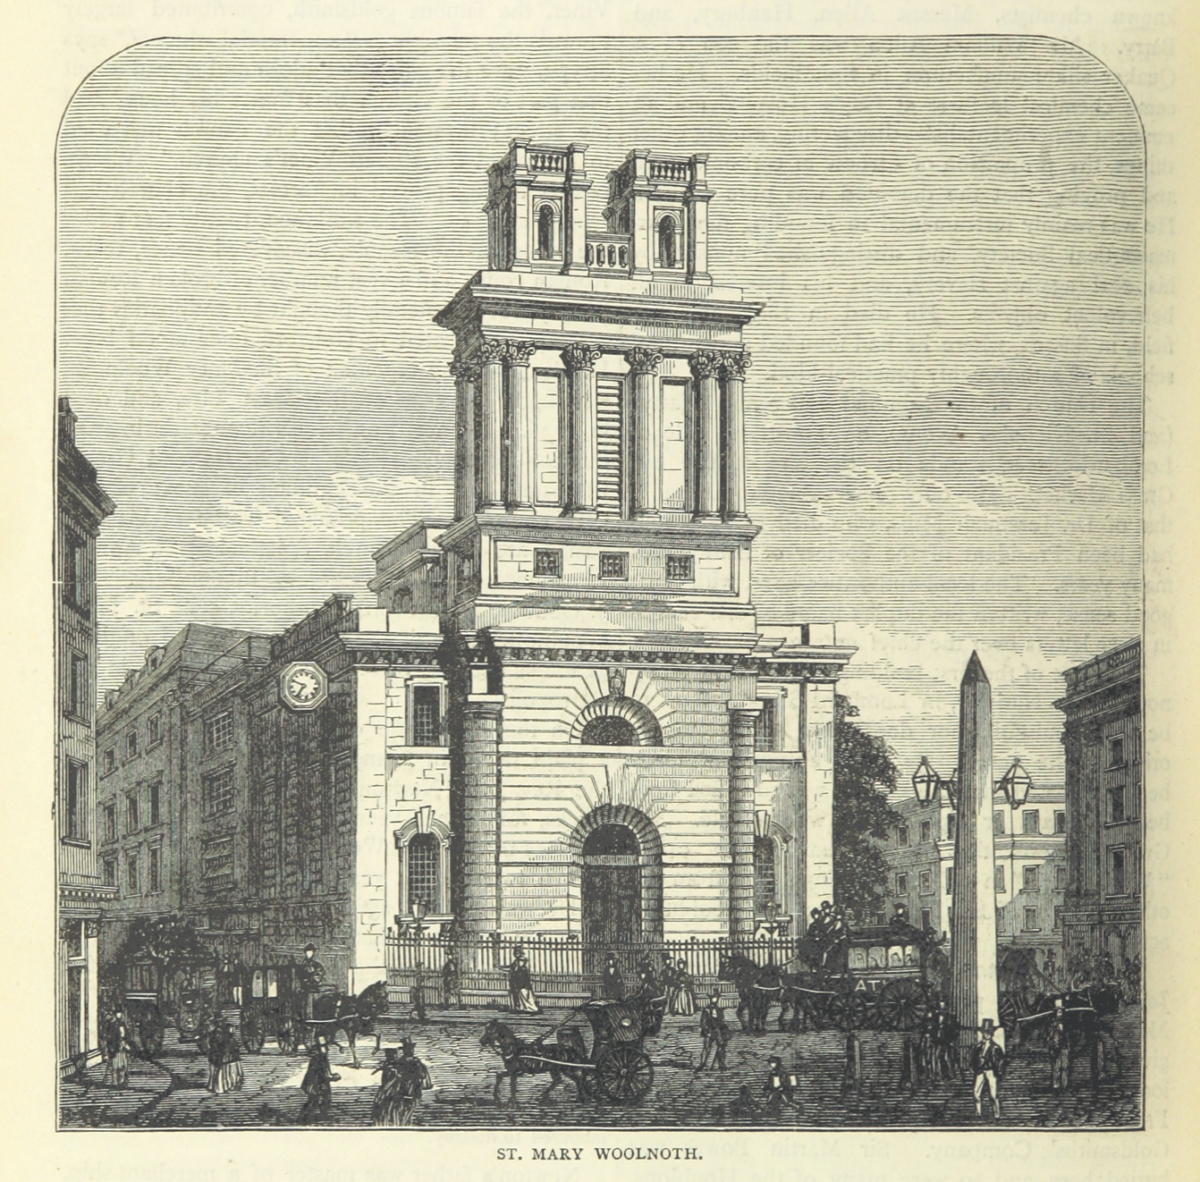 Illustration of the obelisk outside St Mary Woolnoth Church in London before being moved to Swanage